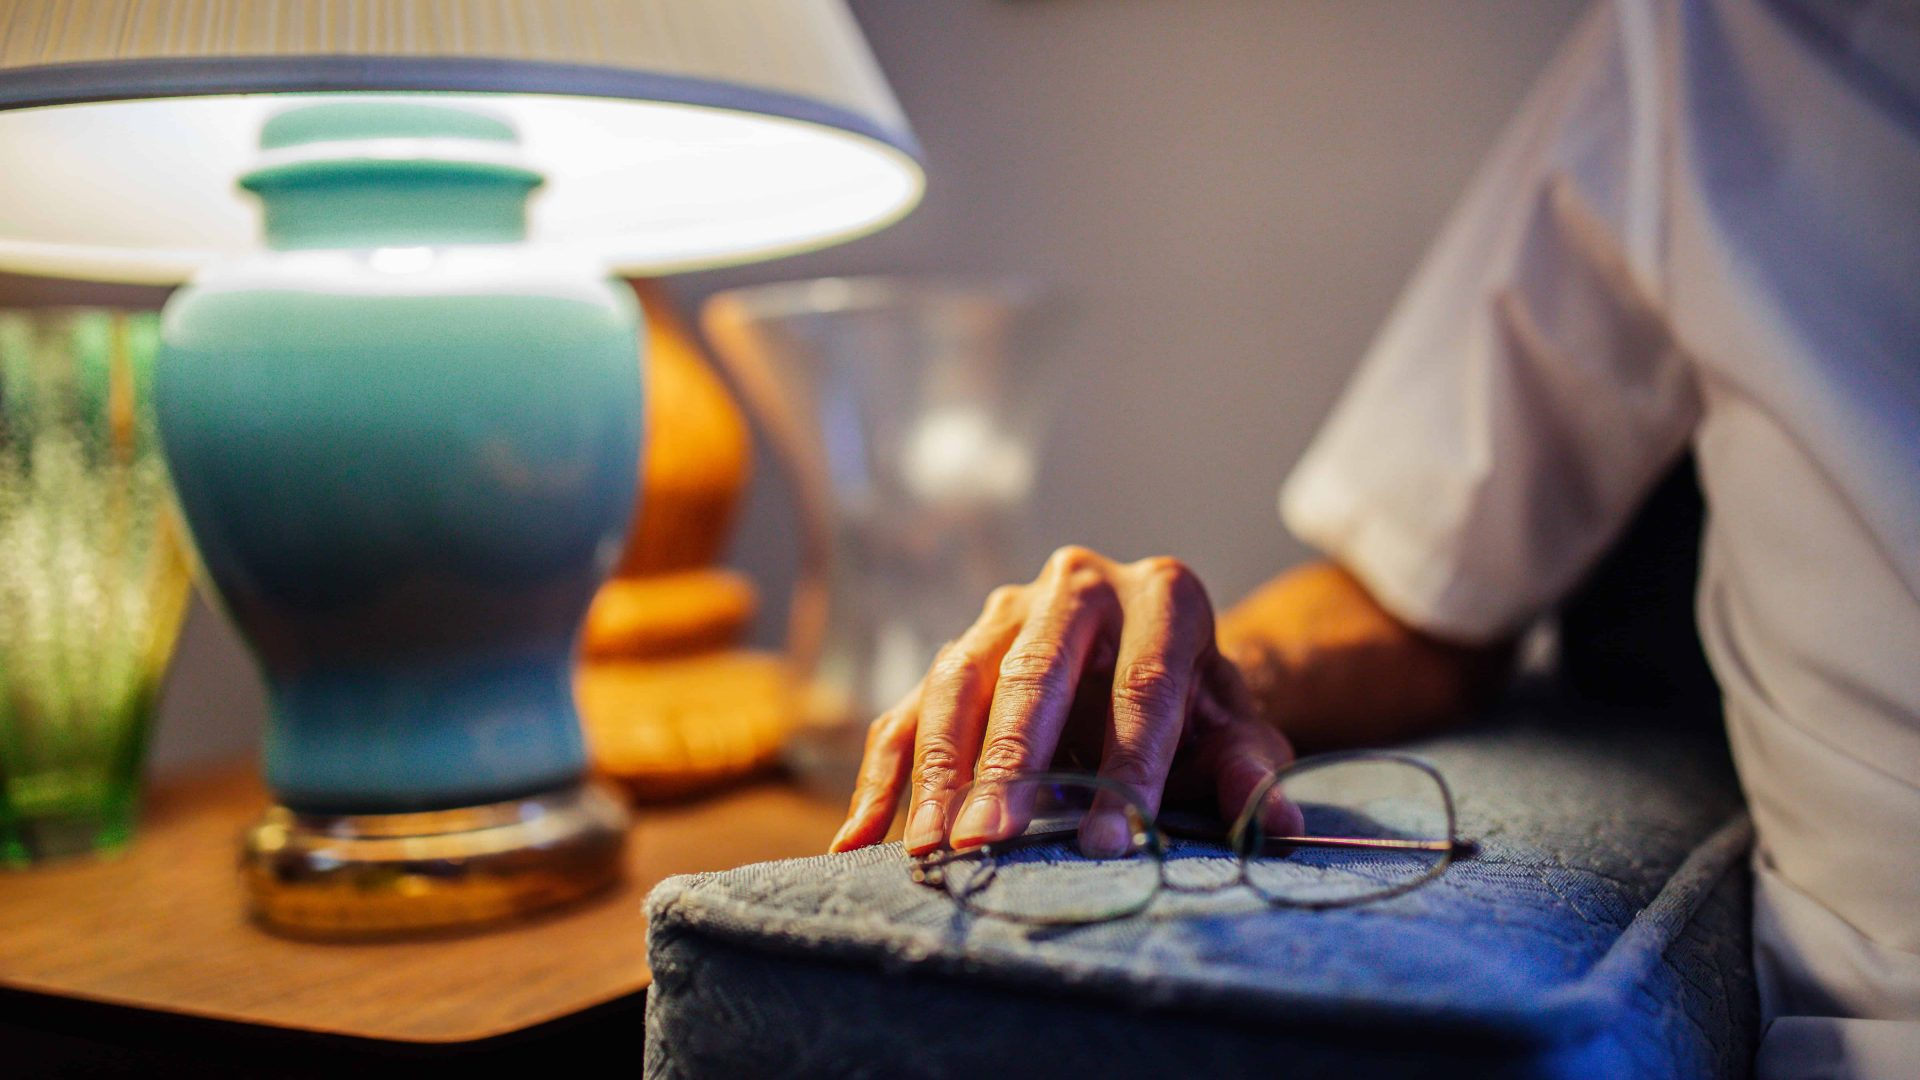 Elderly man's hand rests on the arm of his couch, next to glasses